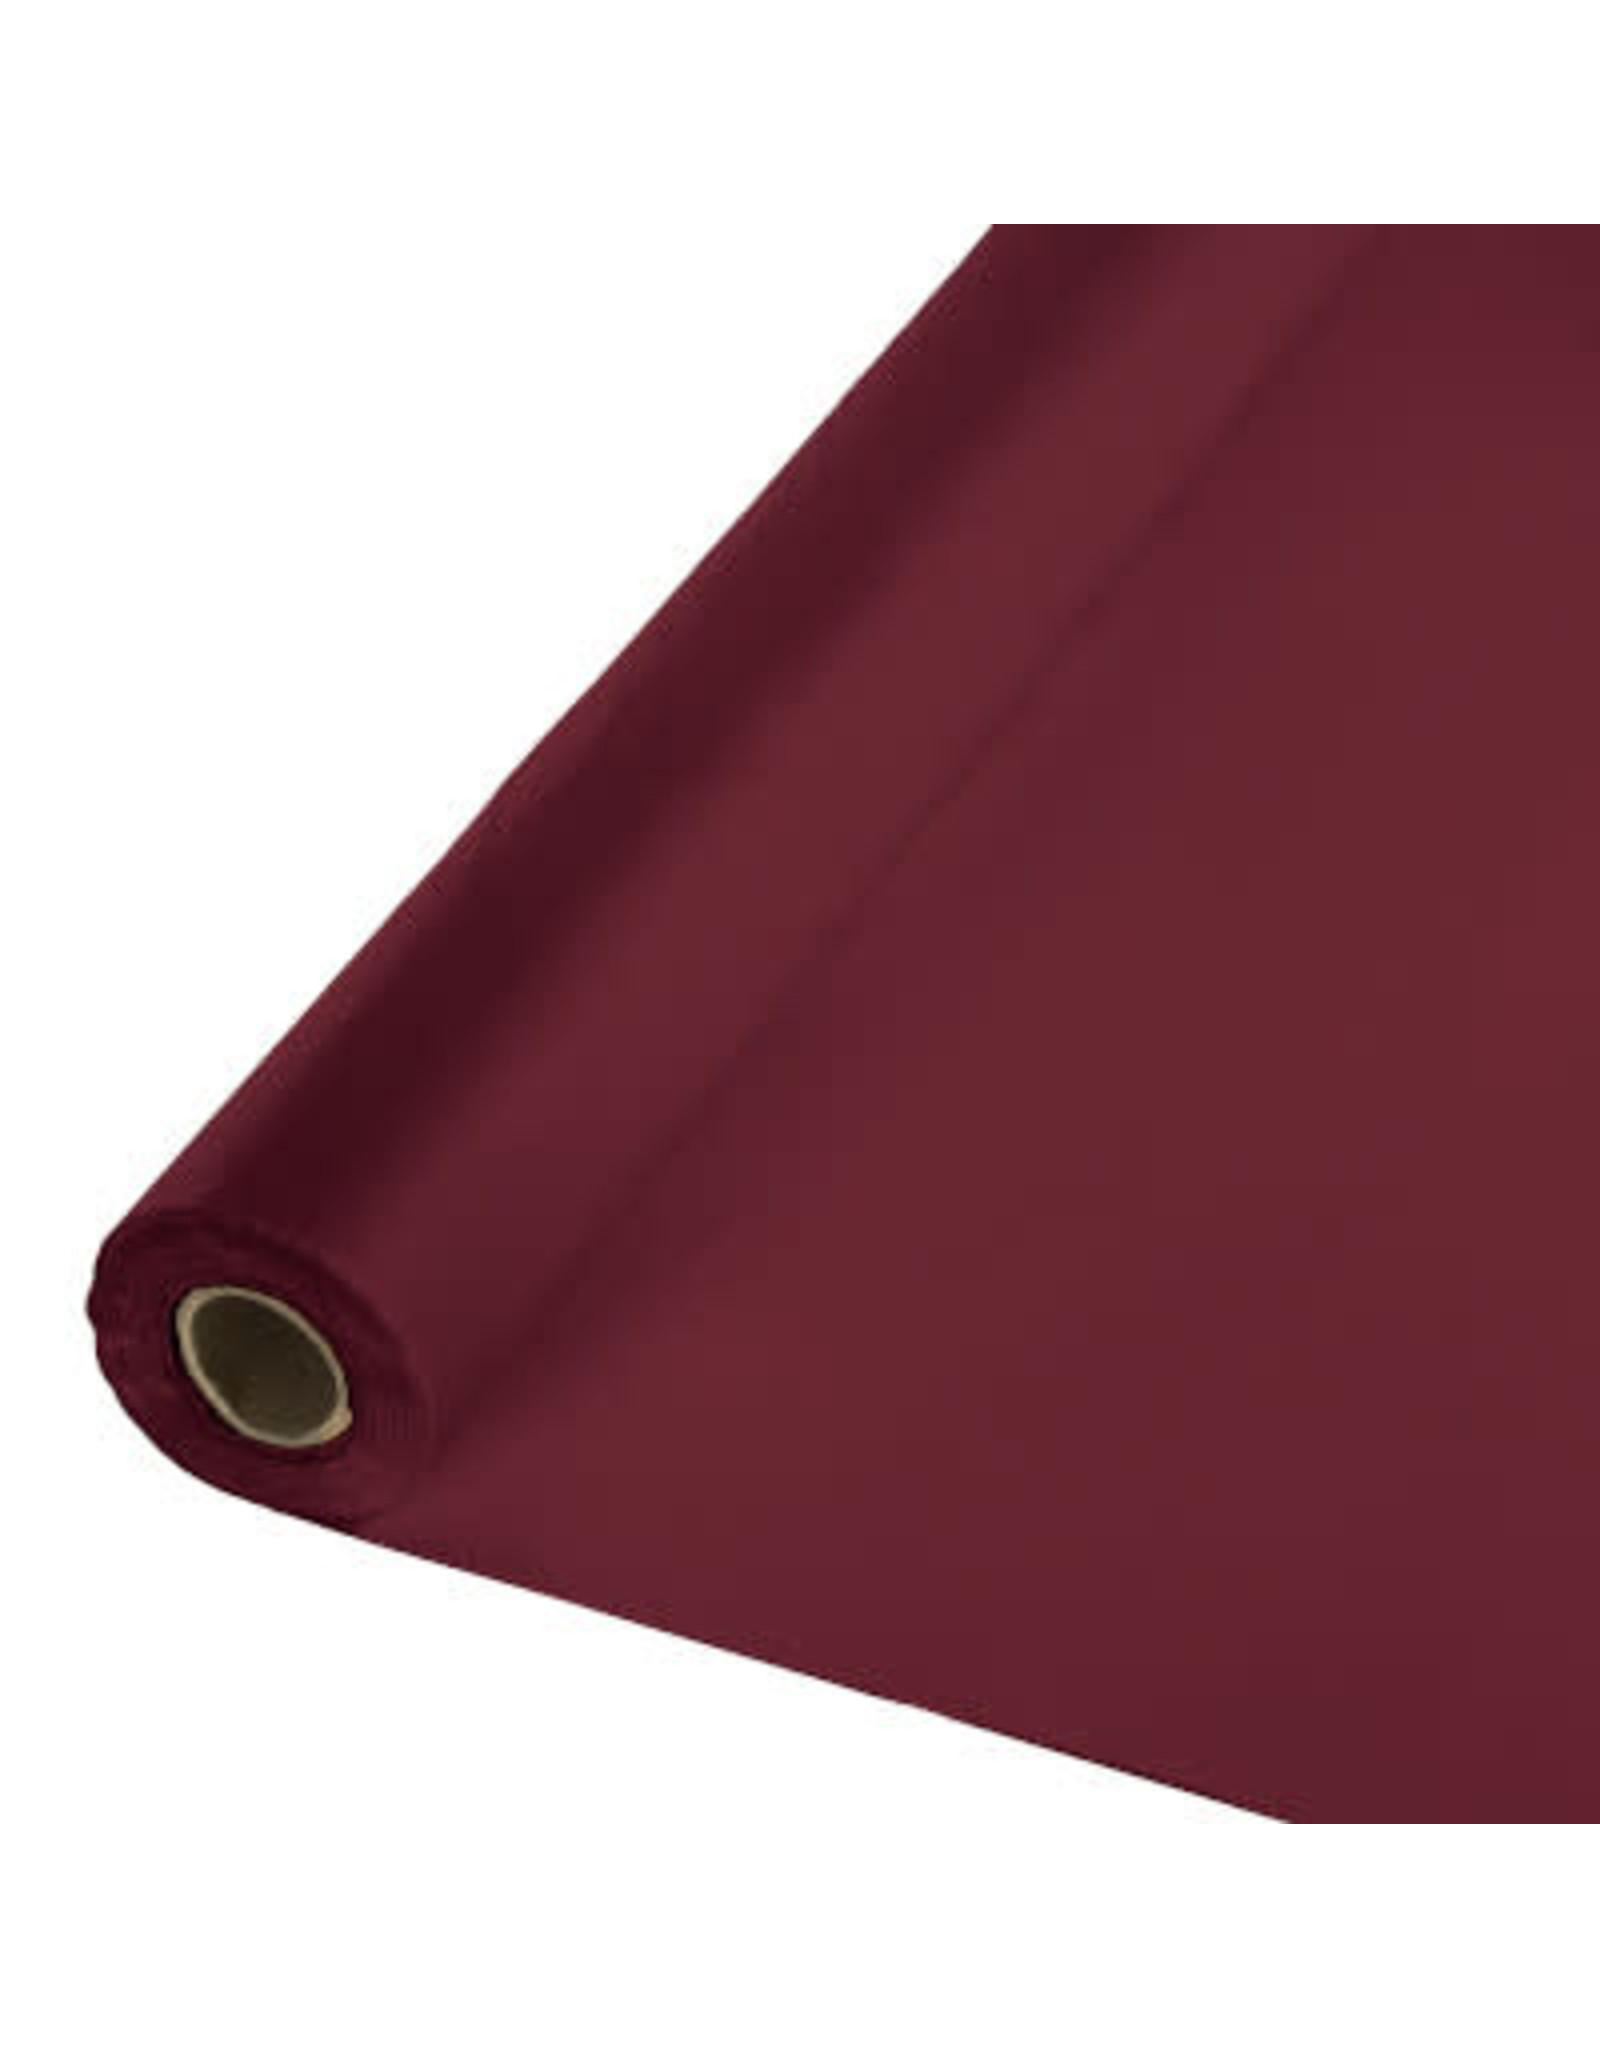 Touch of Color BURGUNDY RED PLASTIC BANQUET ROLL